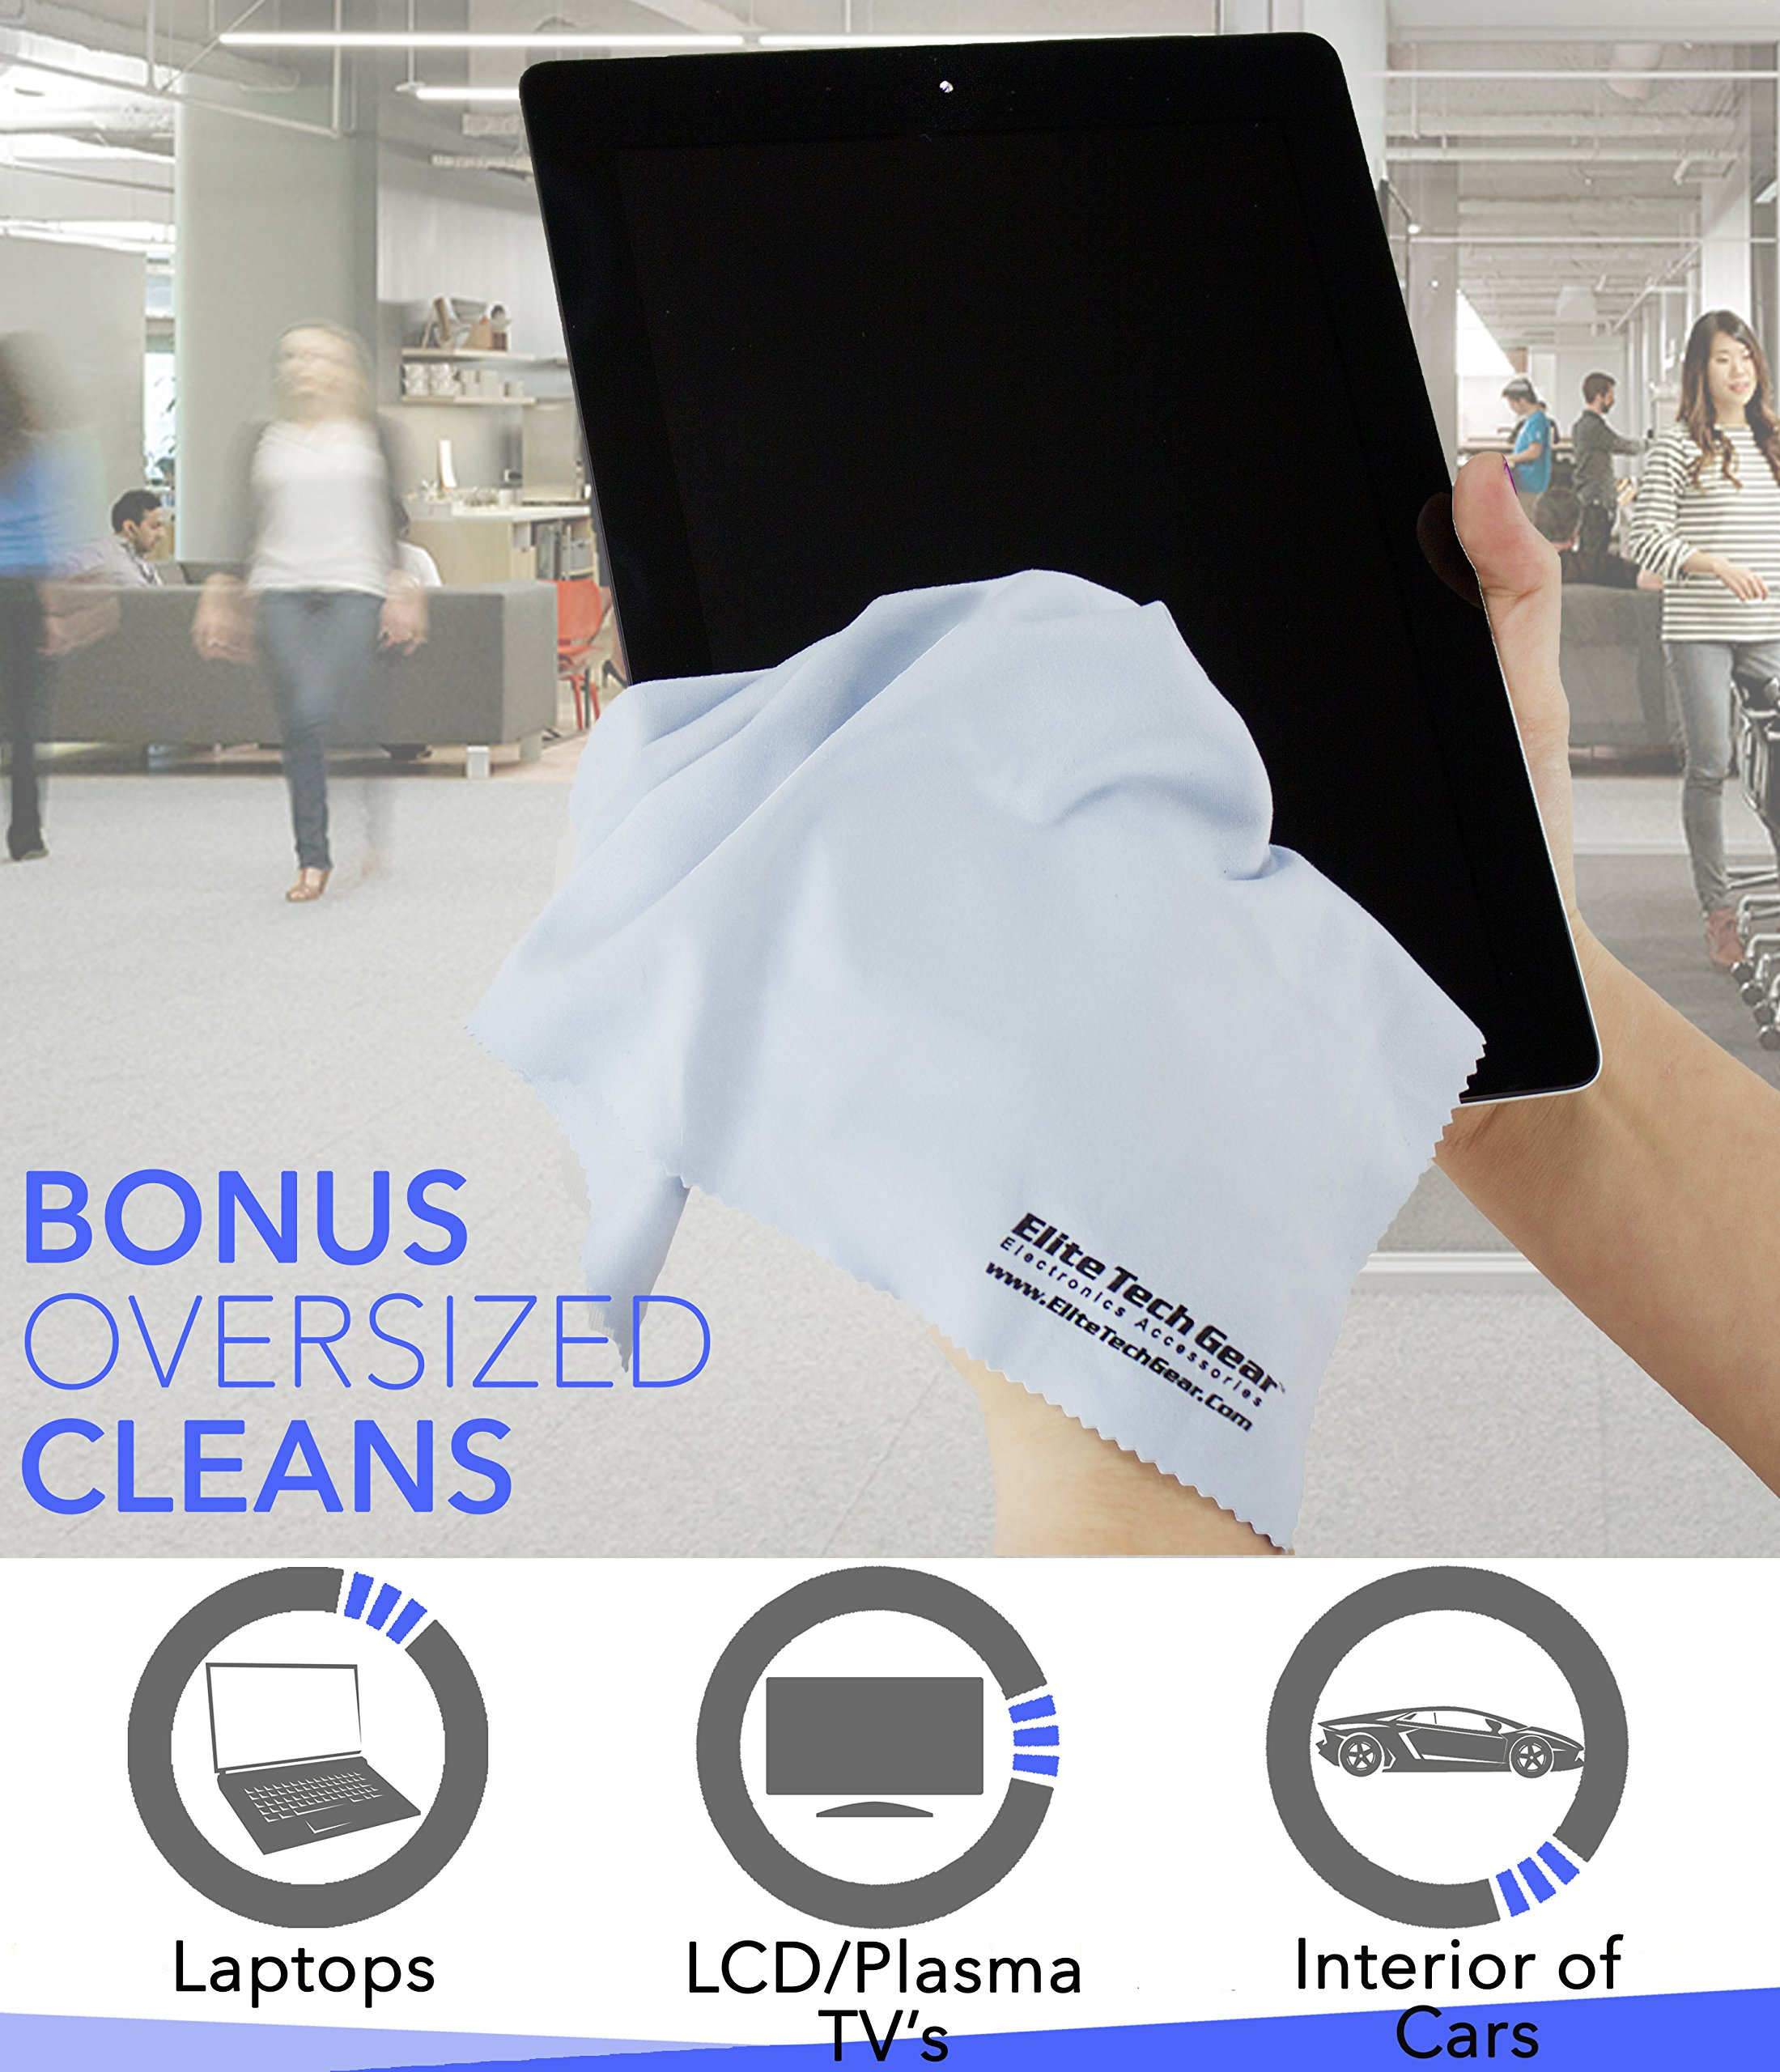 "The Most Amazing Microfiber Cleaning Cloths (13 Pack). Perfect For Cleaning All Electronic Device Screens, Eyeglasses, Tablets & Other Delicate Surfaces (12 Large 6''x7"" & 1 Oversized 12''x12"") by Elite Tech Gear (Image #2)"